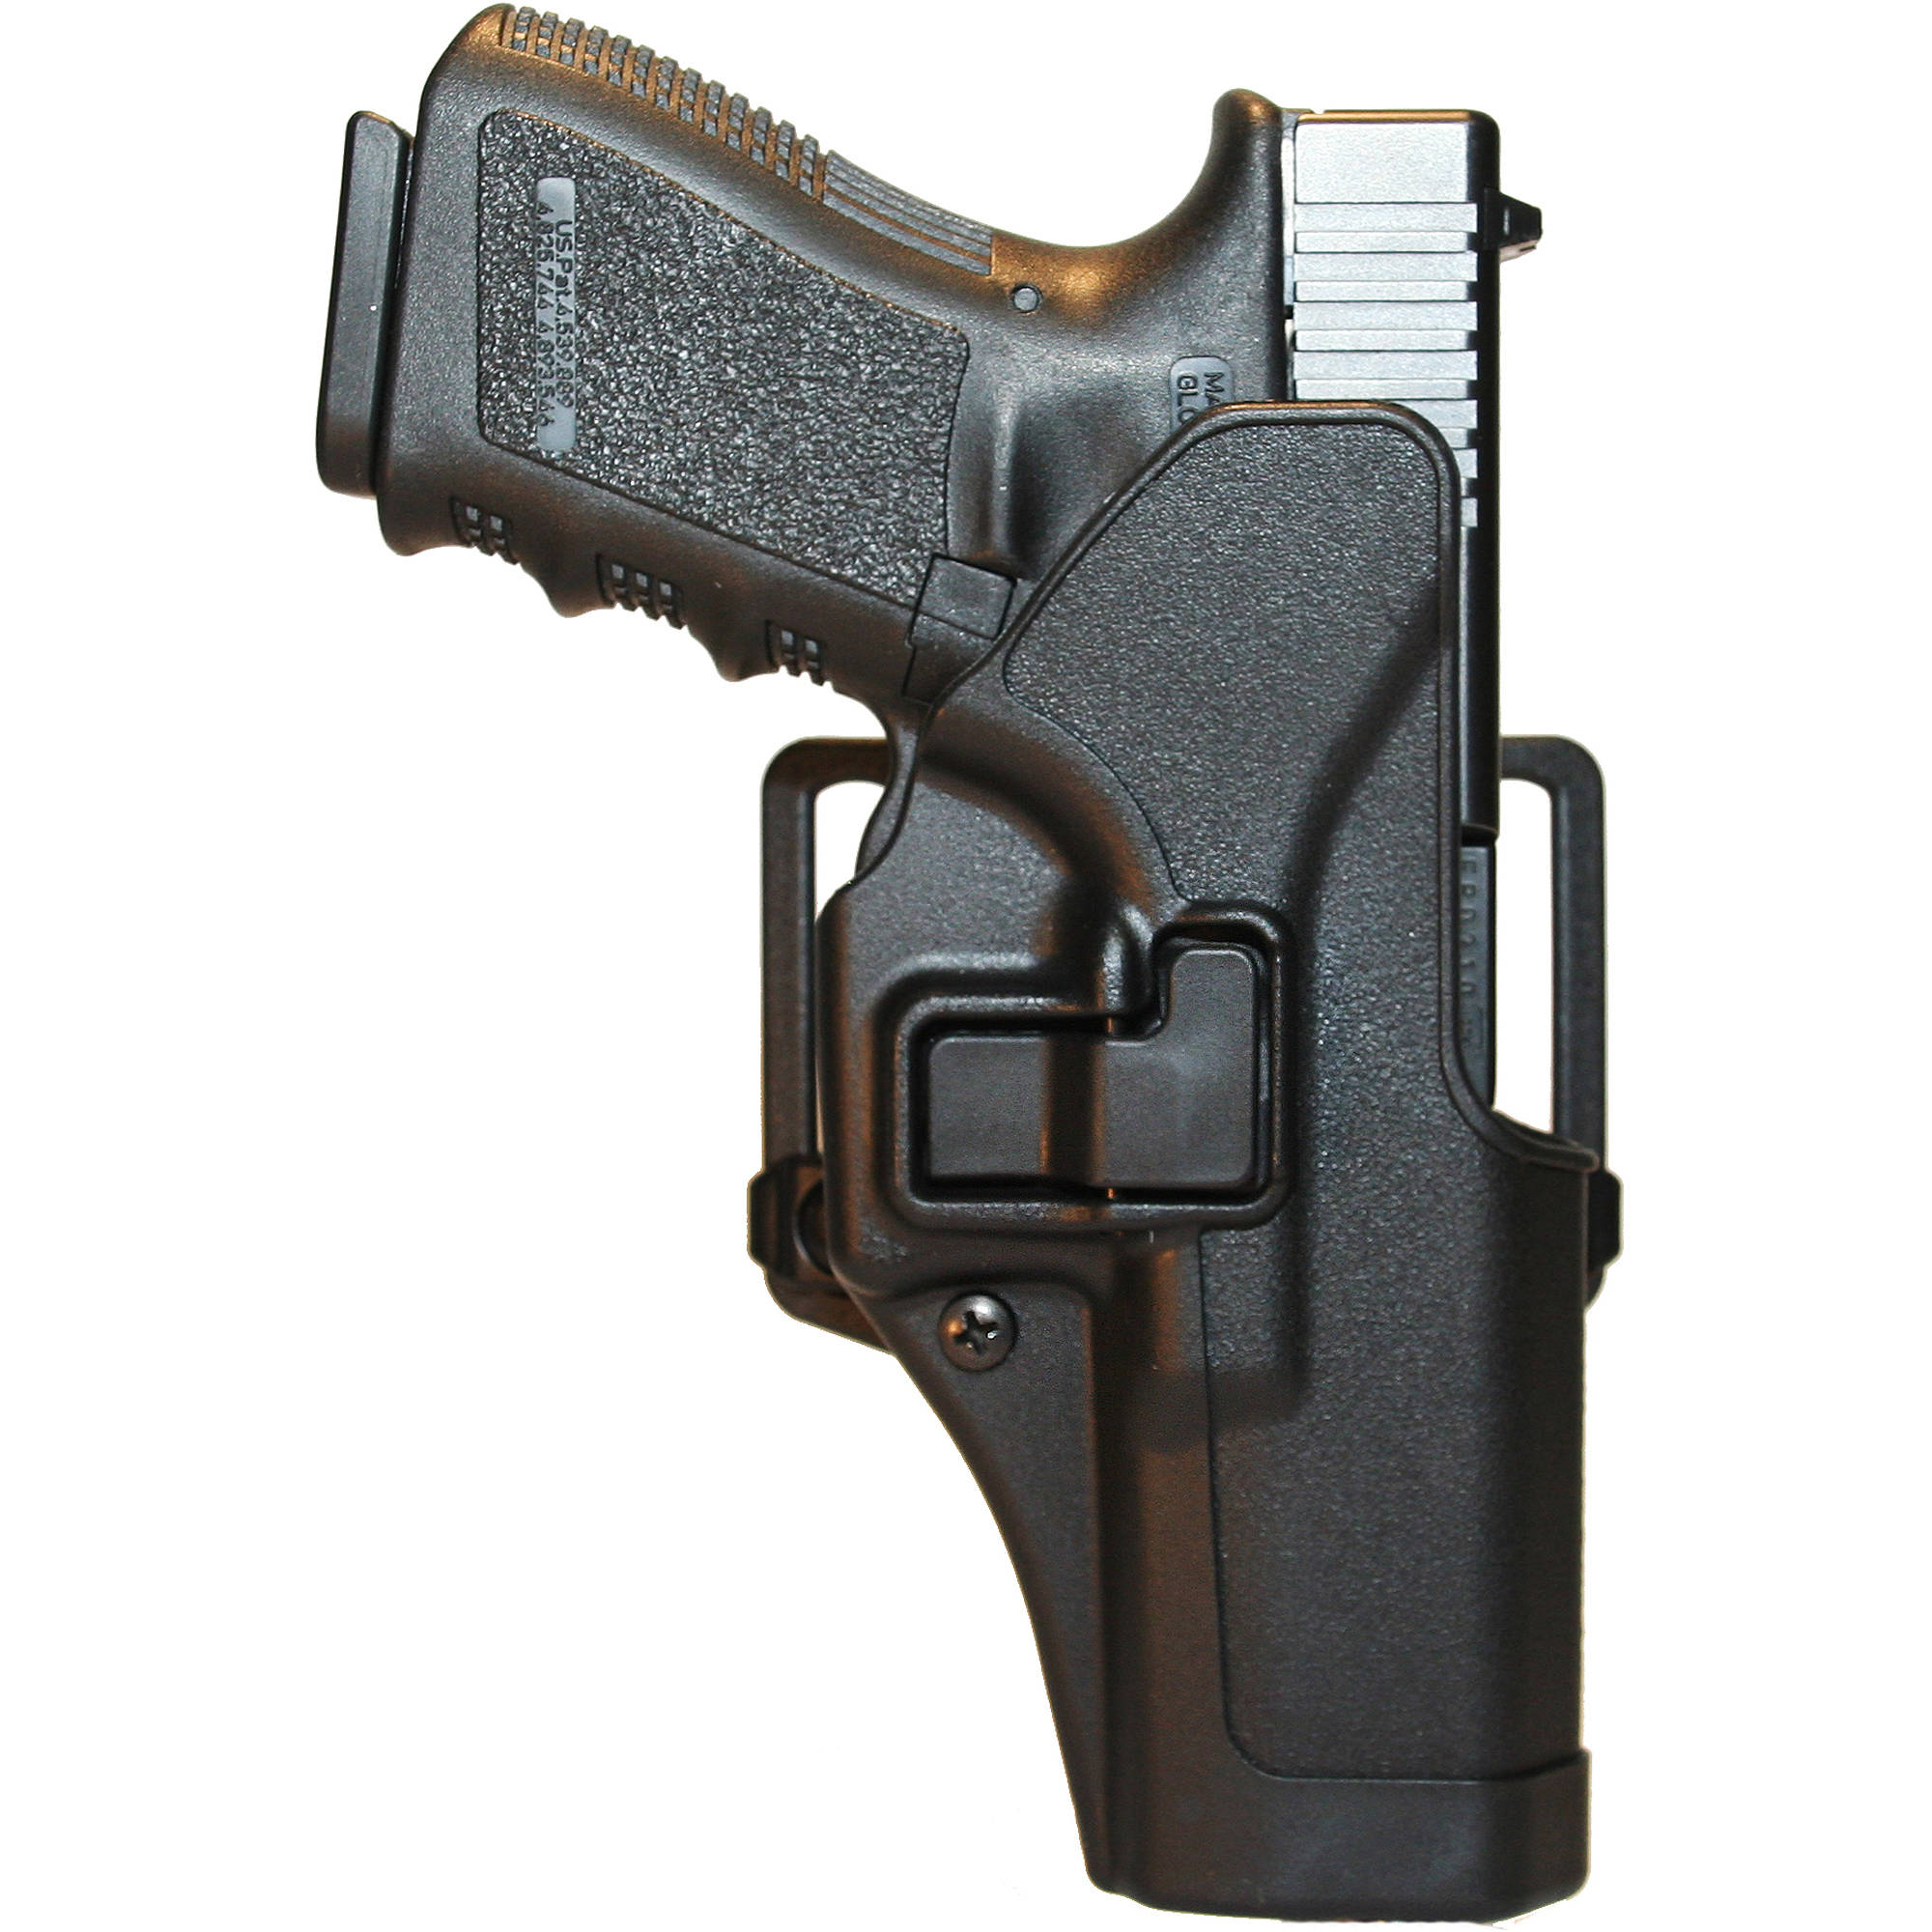 BLACKHAWK! SERPA CQC Concealment Holster Matte Finish